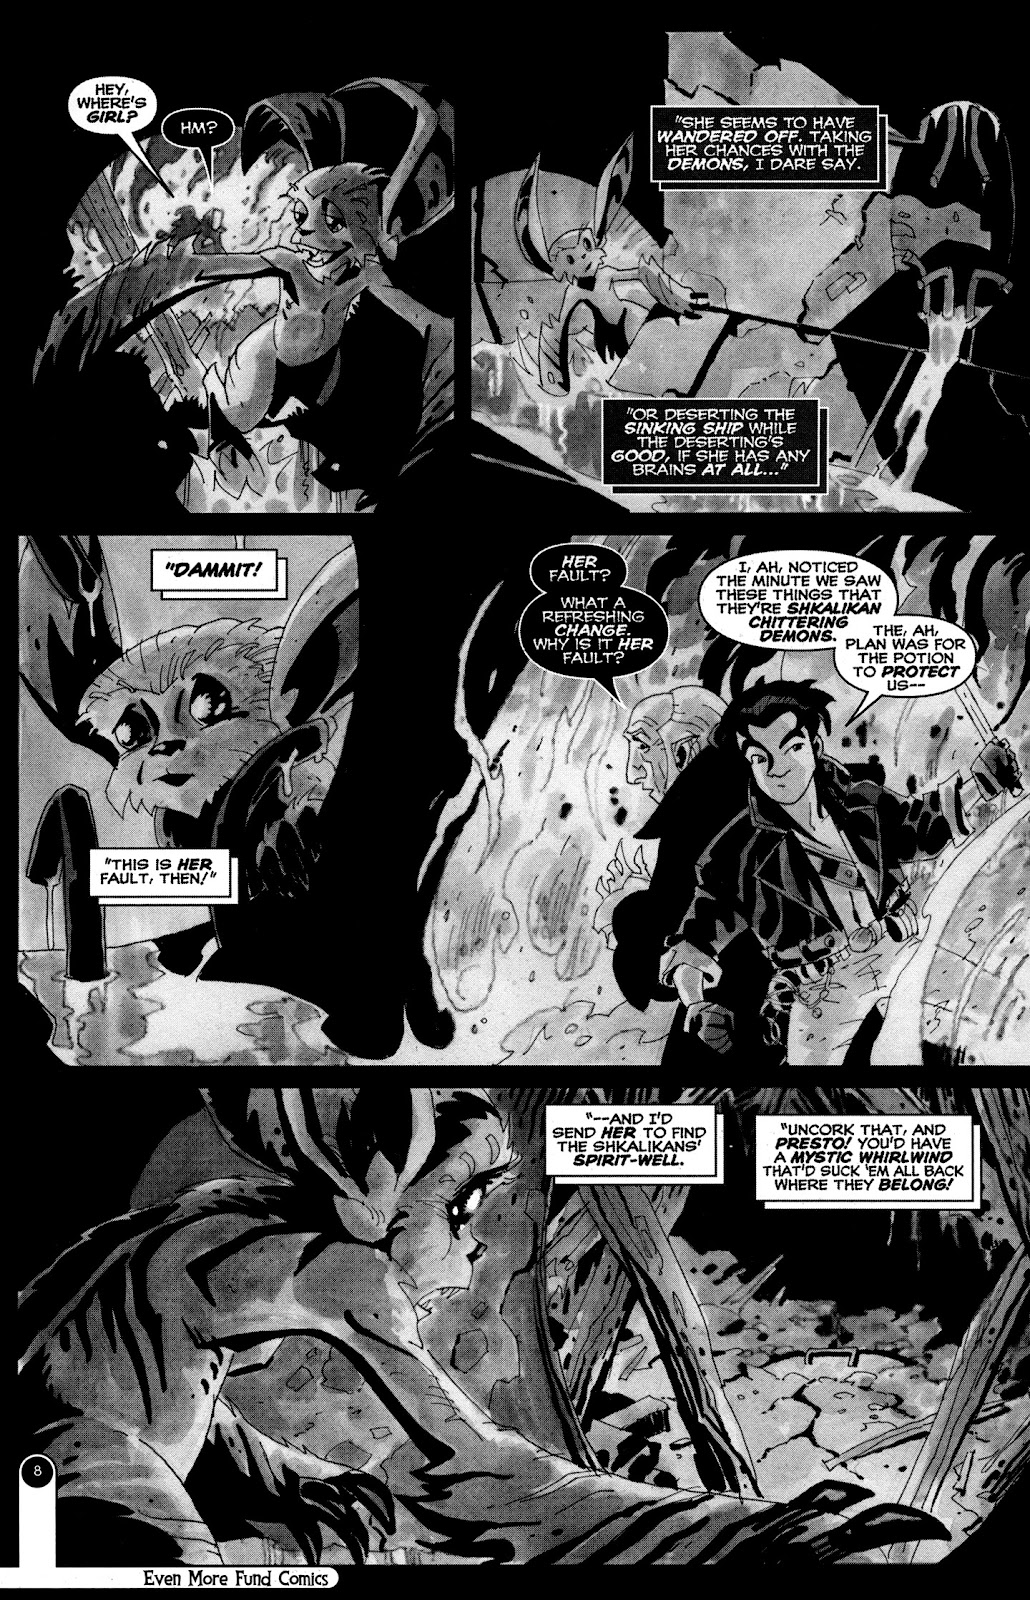 Read online Even More Fund Comics comic -  Issue # TPB (Part 1) - 8